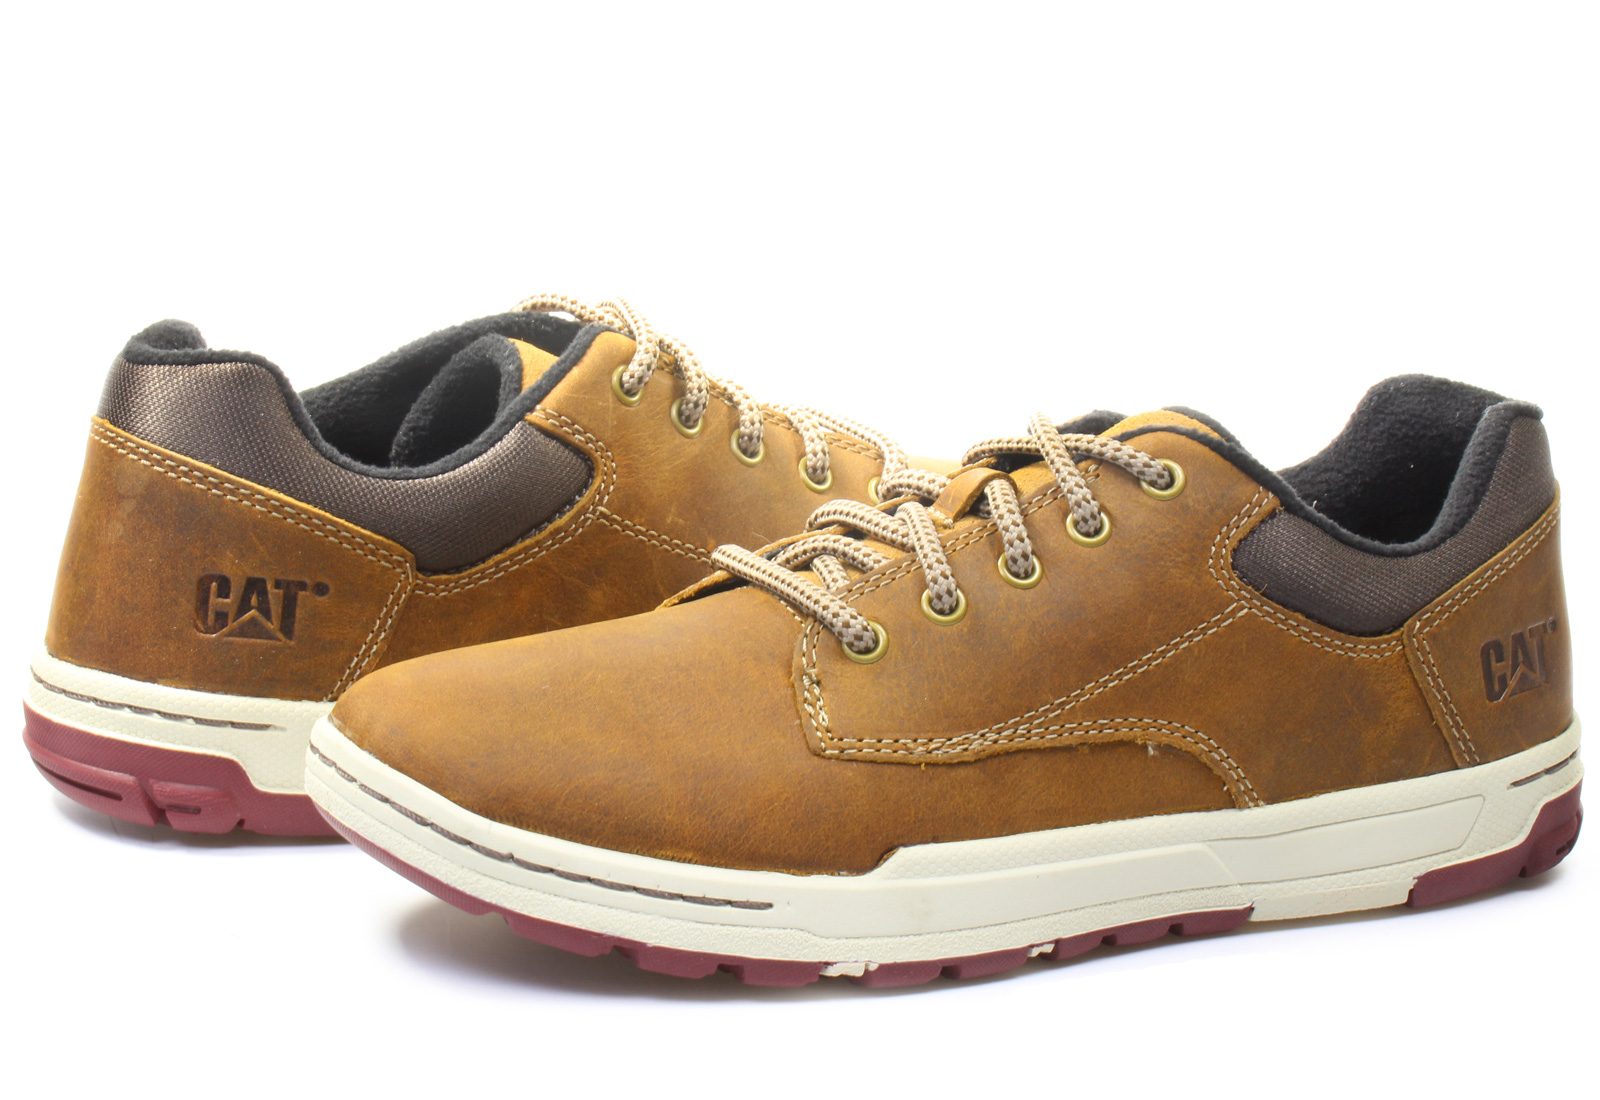 Outdoor Shoes Online Shopping